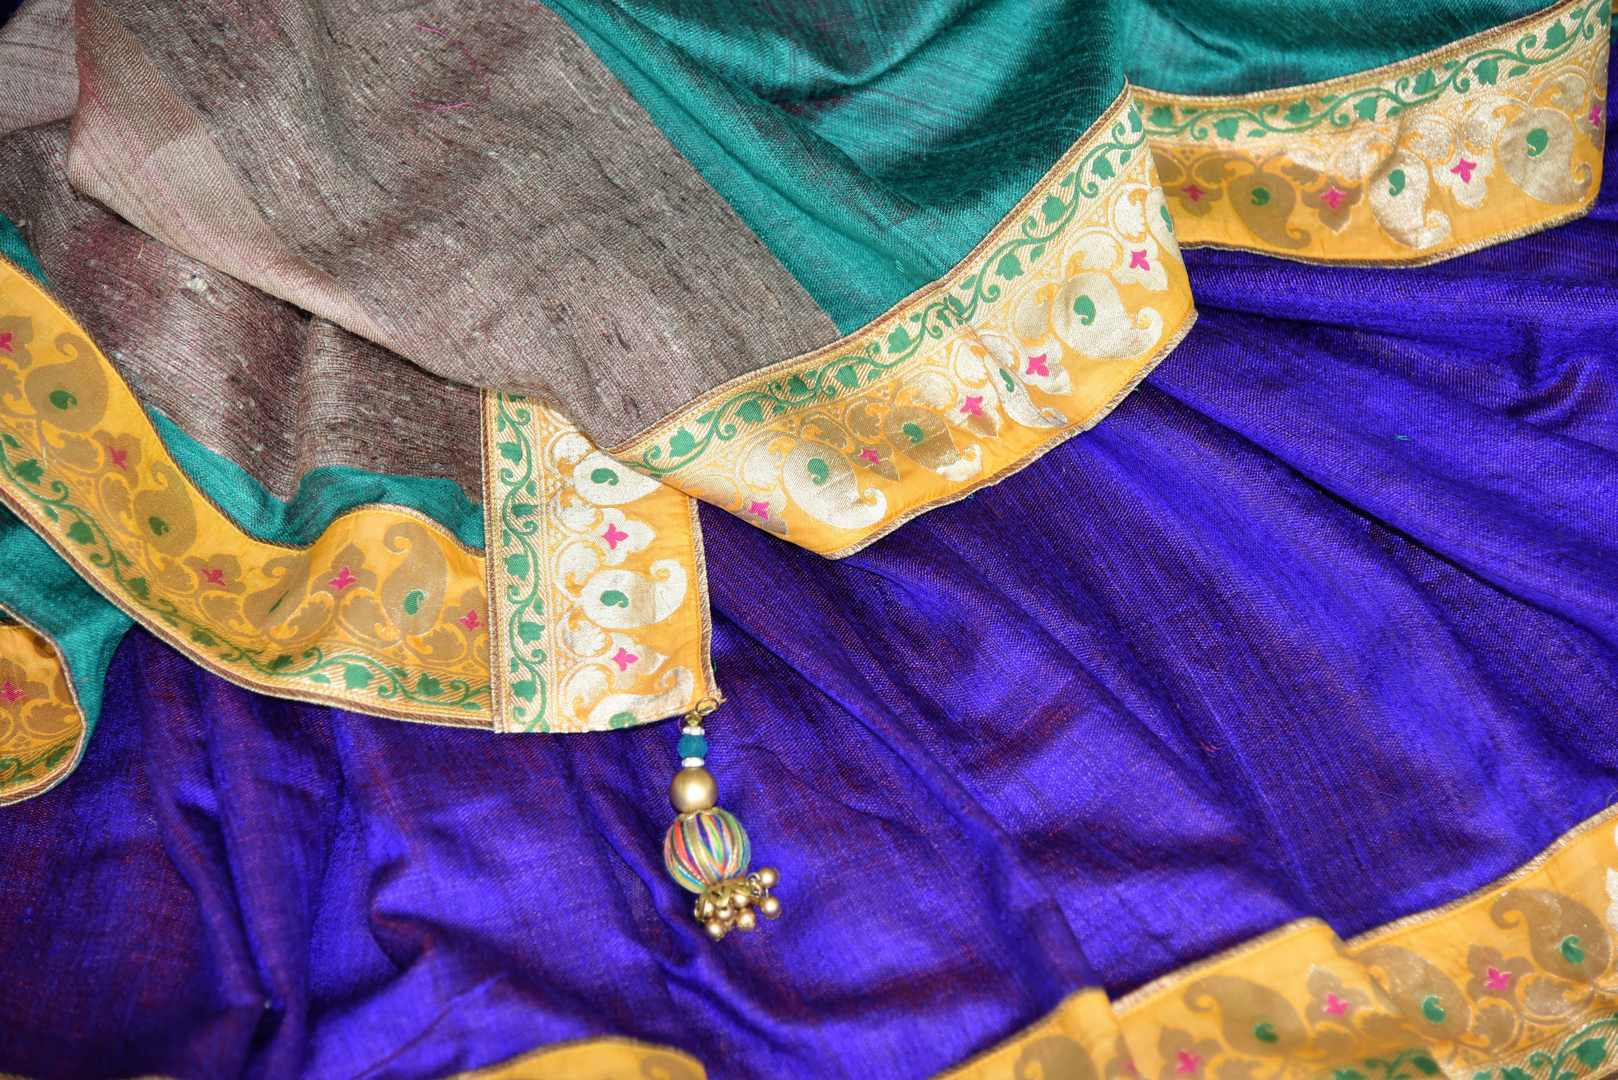 Buy blue and green Pashmina saree online in USA with khaddi Banarasi border from Pure Elegance online store. Visit our exclusive Indian clothing store in USA and get floored by a range of exquisite Indian Kanjivaram saris, Banarasi sarees, silk sarees, Indian jewelry and much more to complete your ethnic look.-details